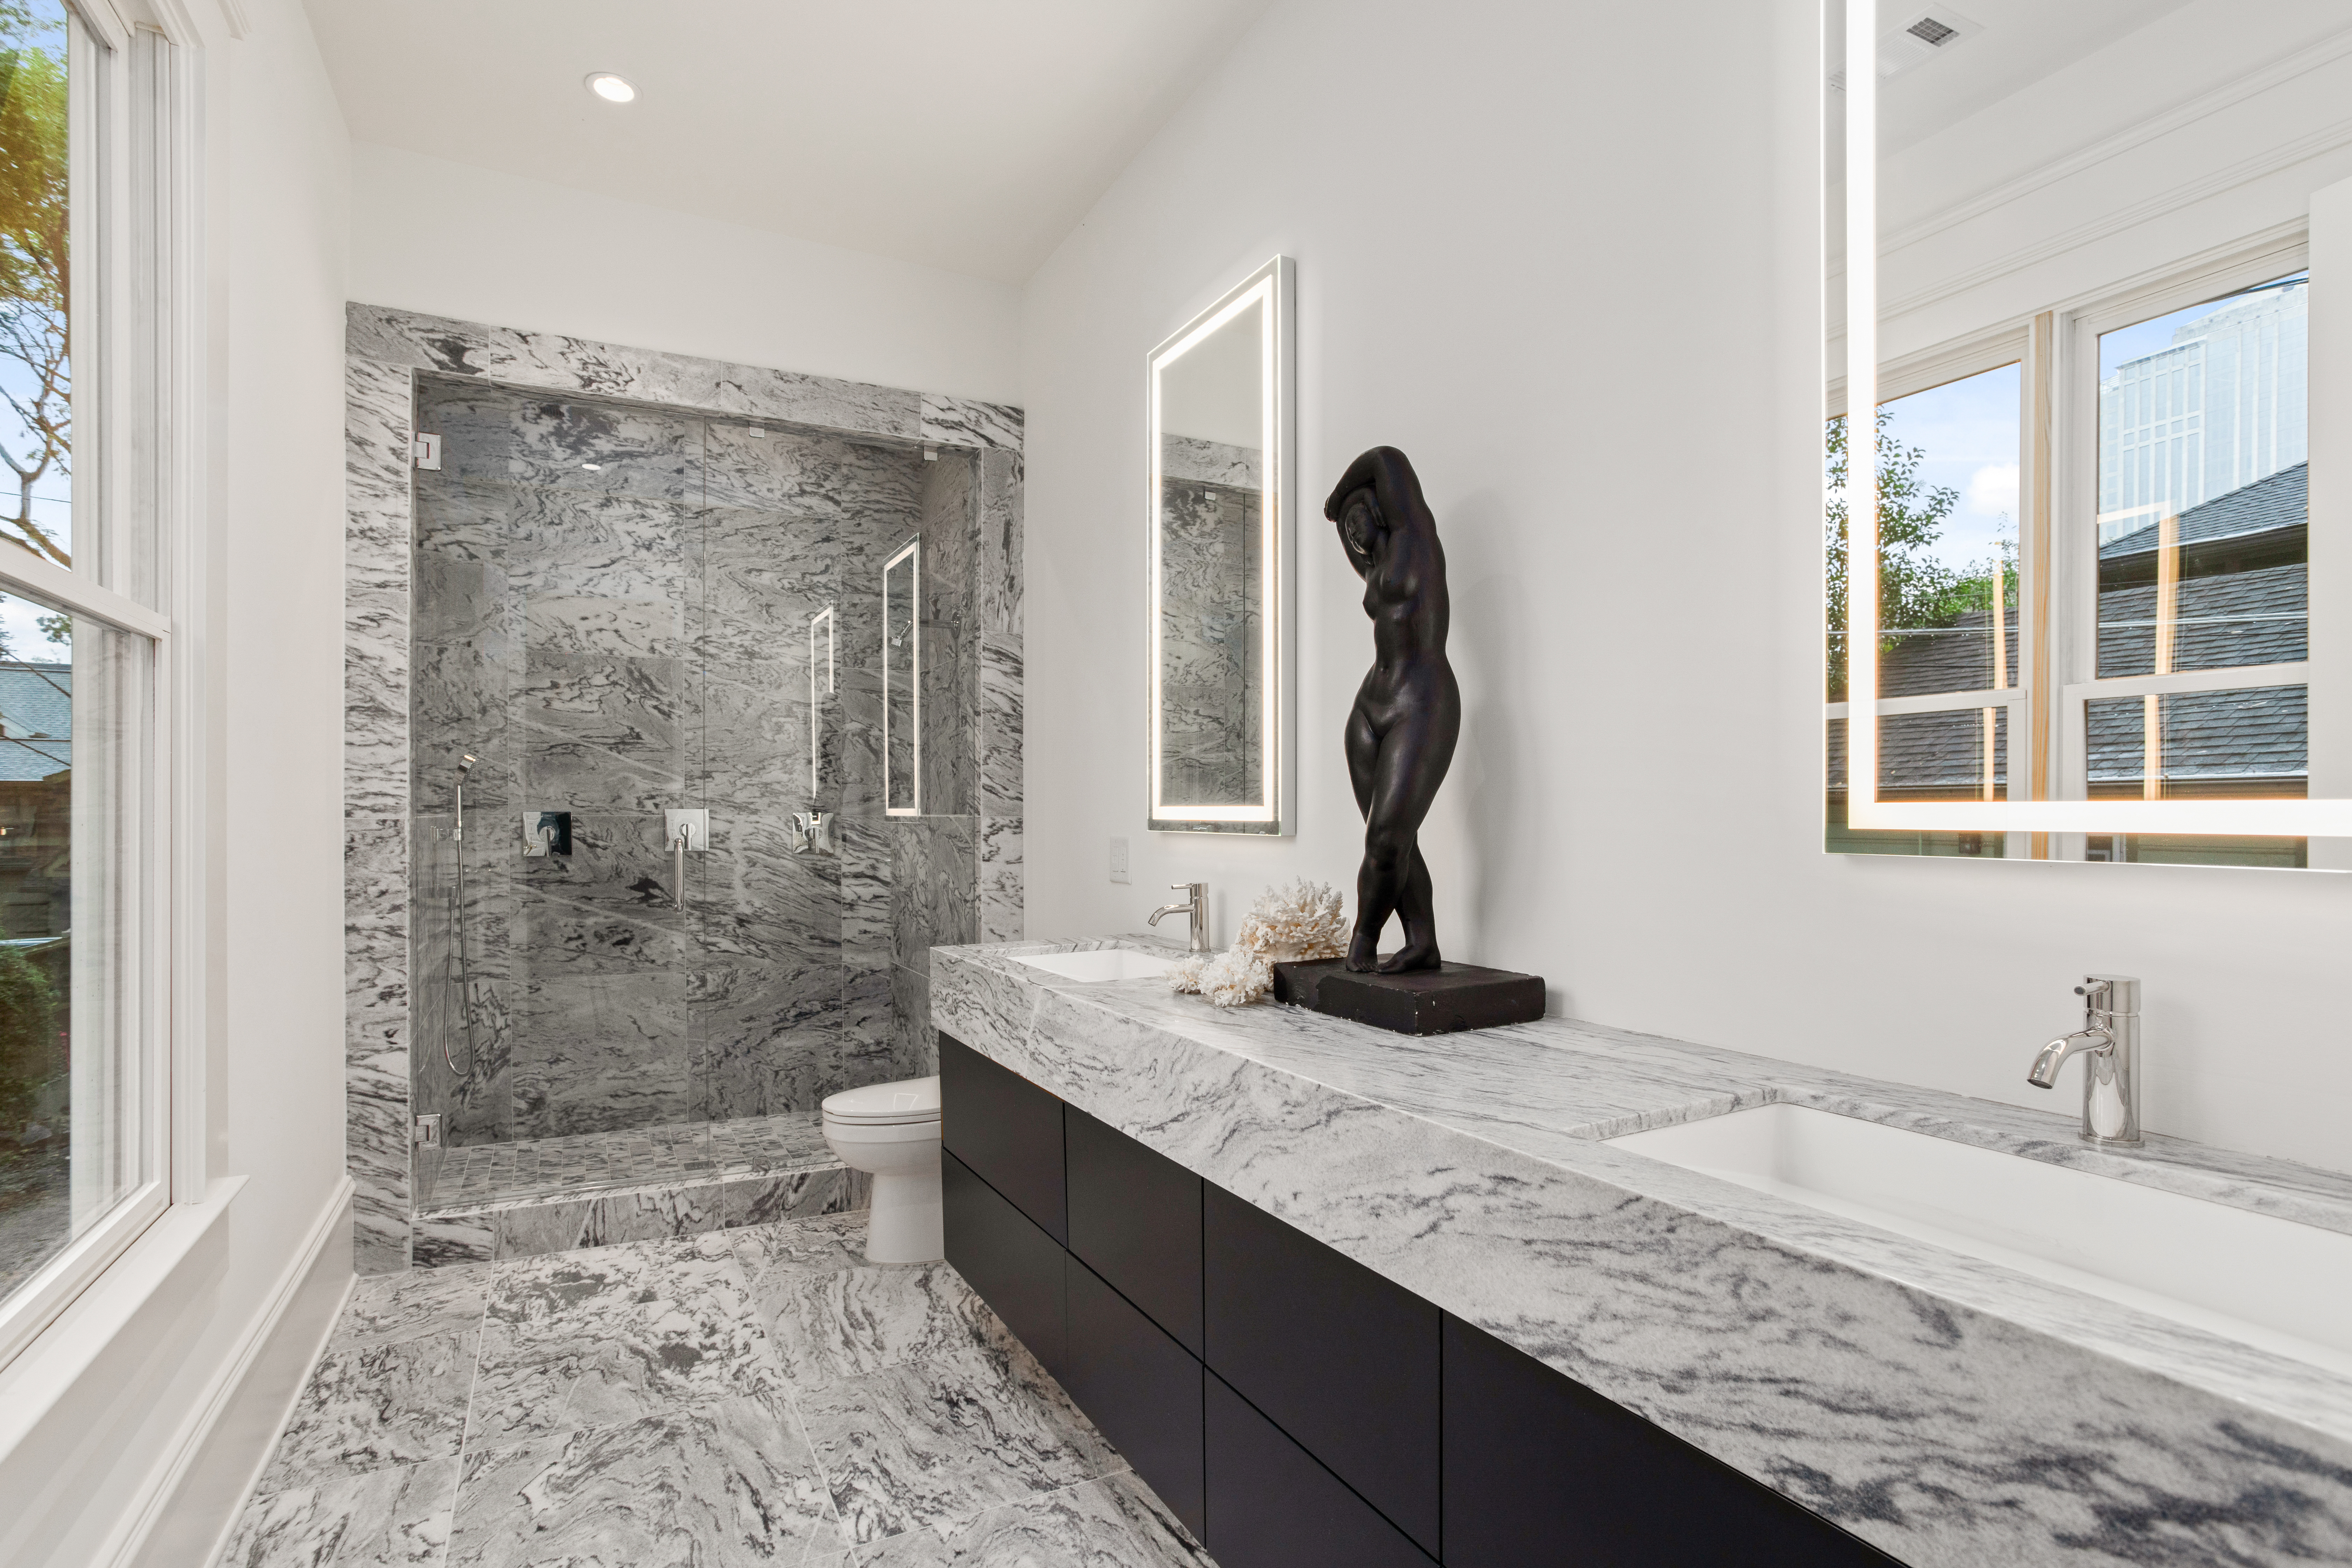 Polycor GEORGIA MARBLE - PEARL GREY™ bathroom